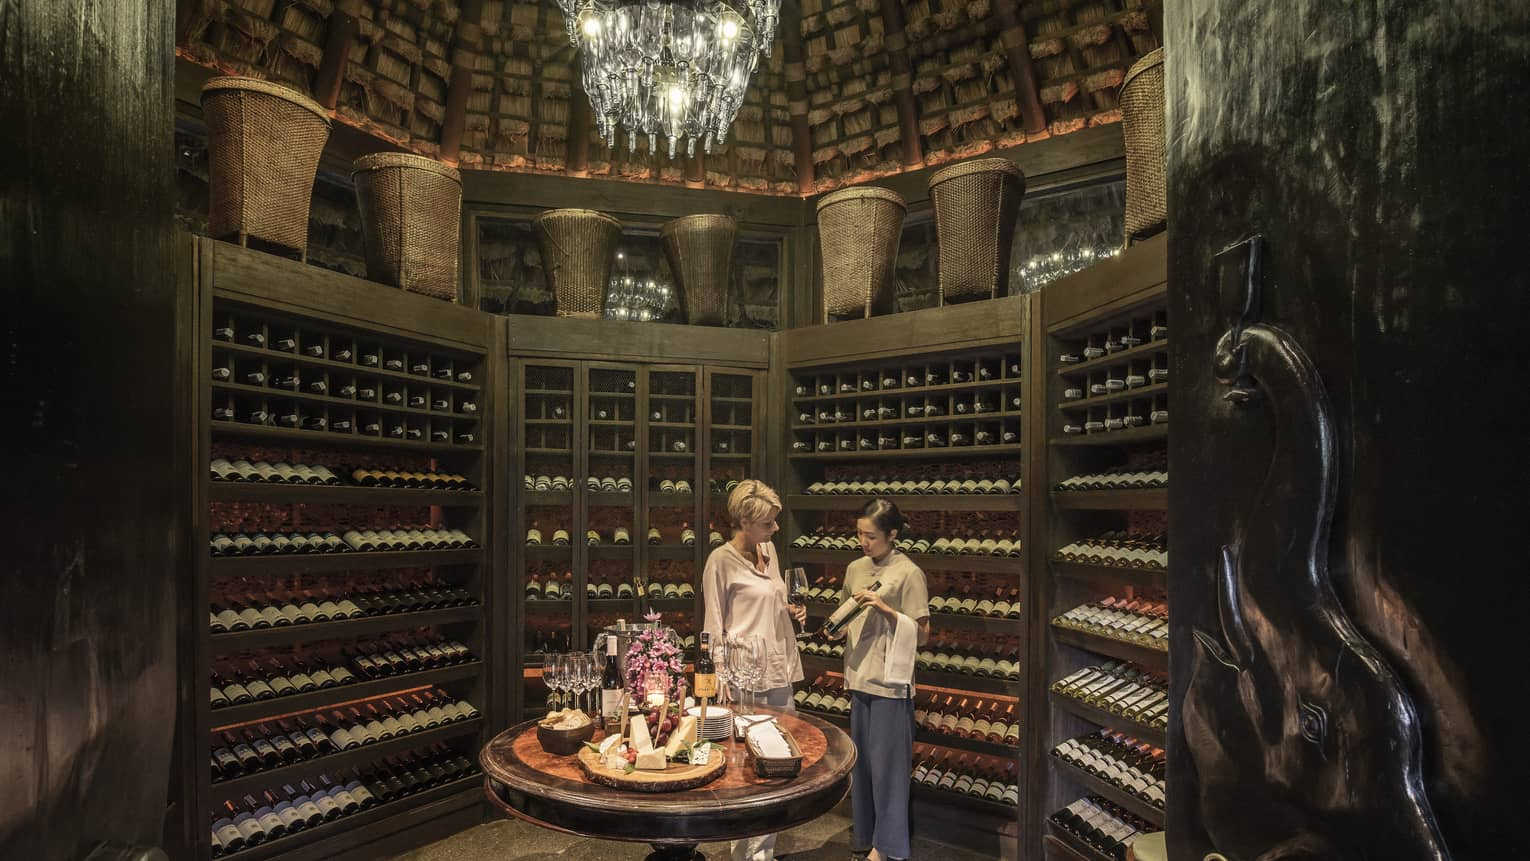 Two people examine wine bottles in Camp Wine Cellar